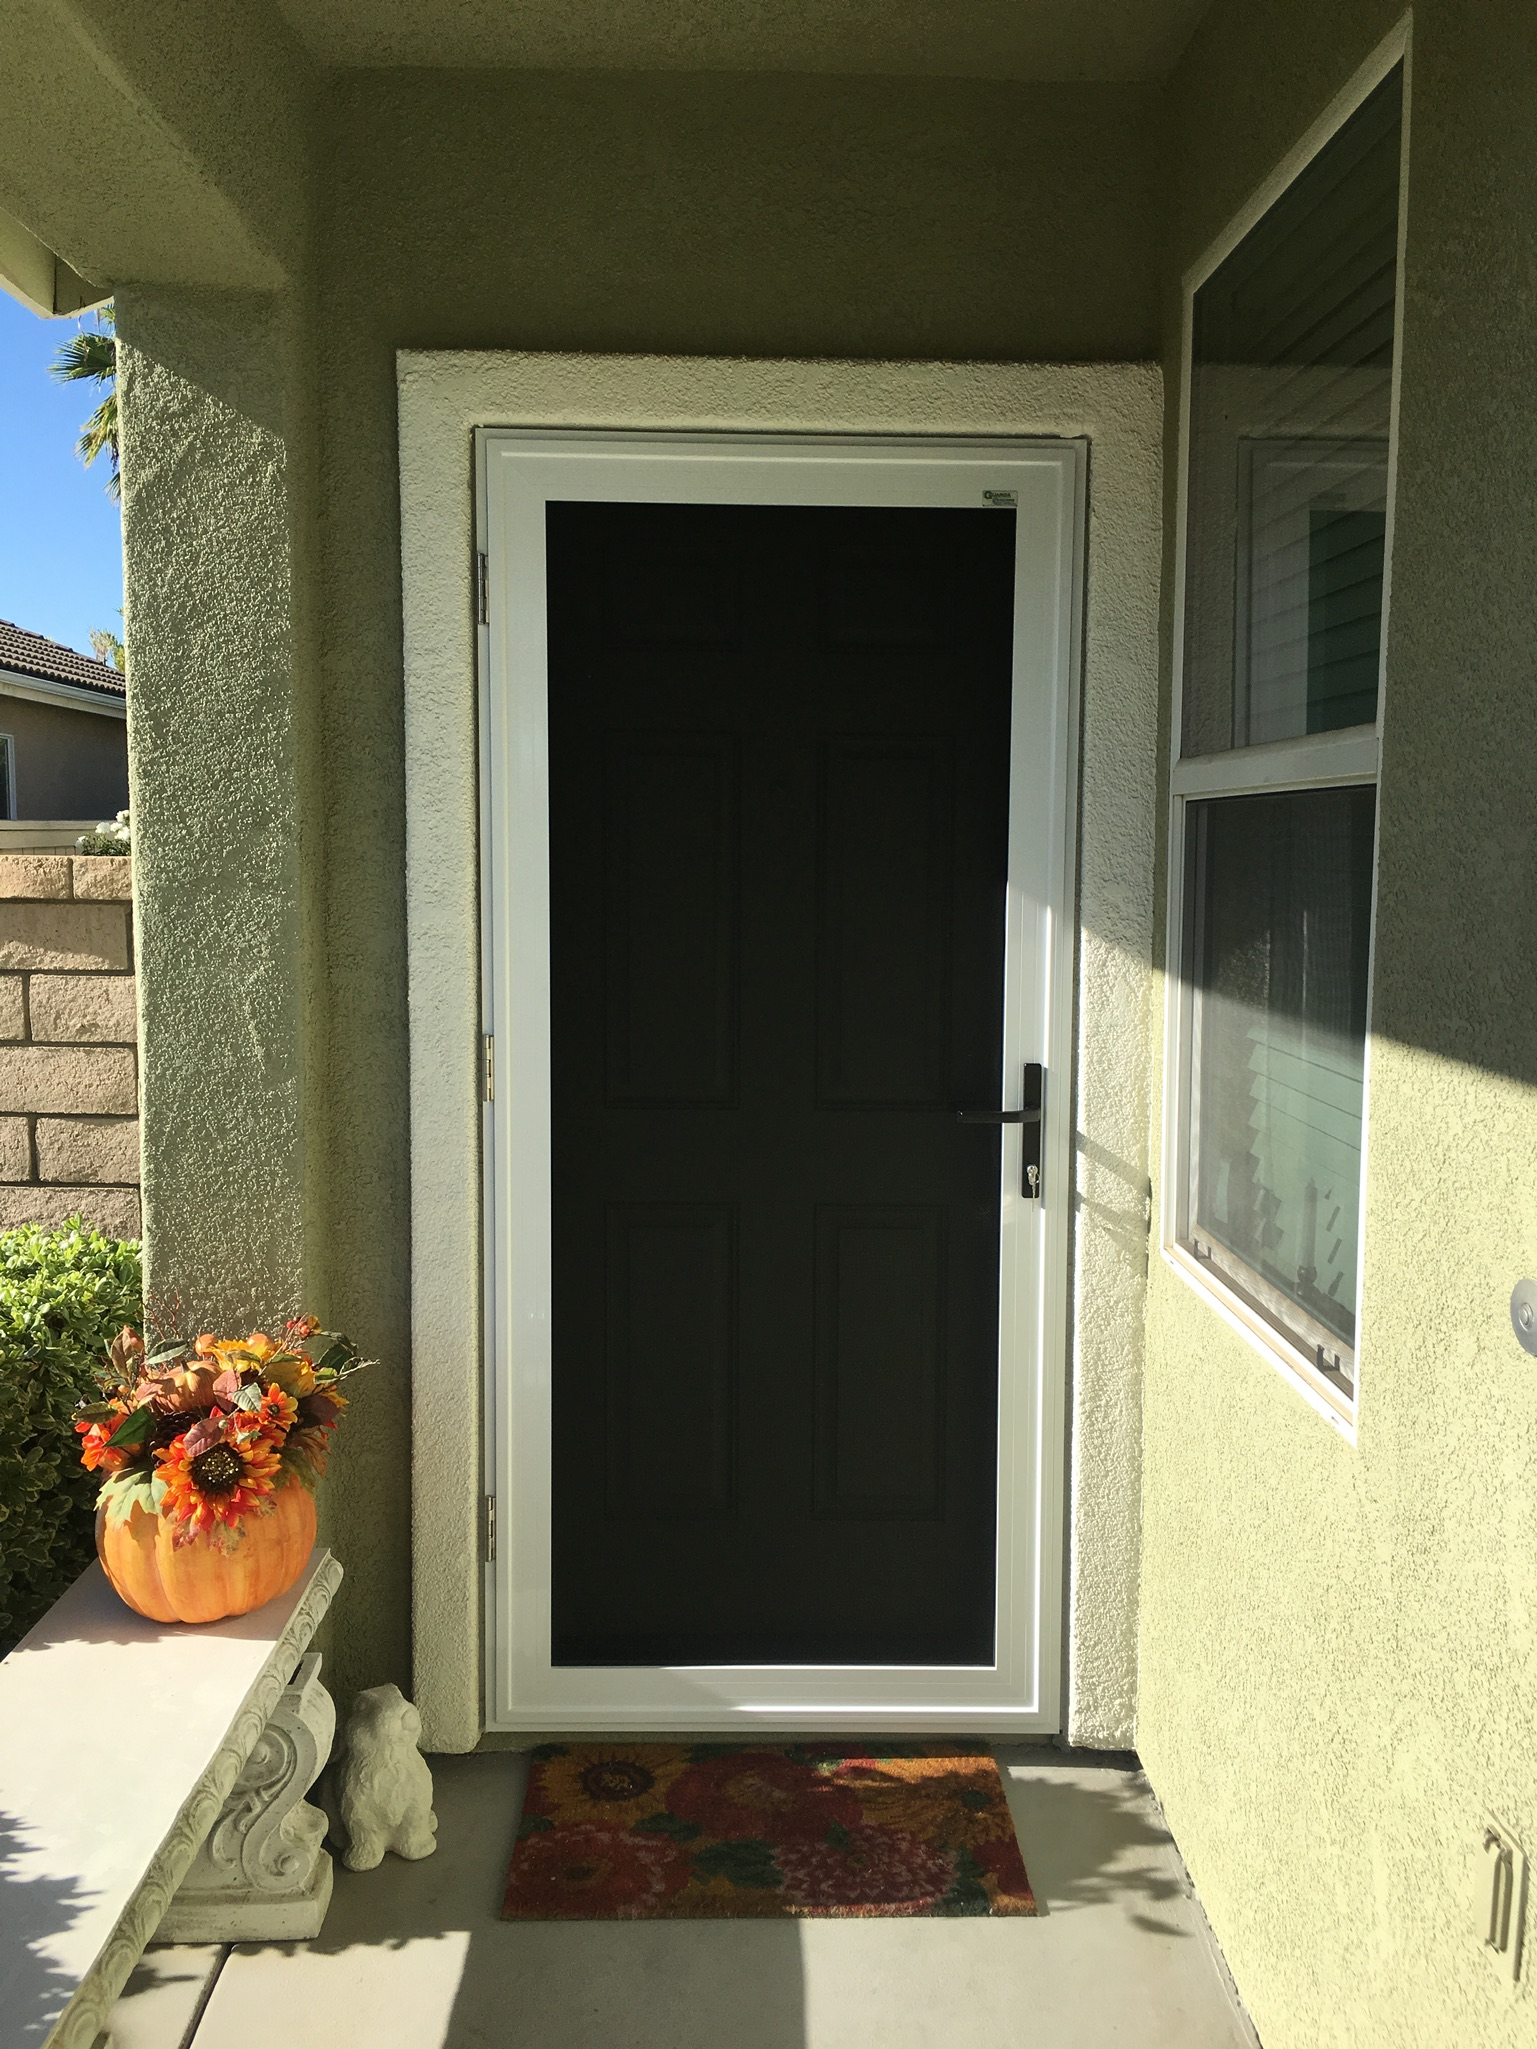 White Guarda premium security screen door installed in Ryland Oasis, Menifee 11/17/16 - 1